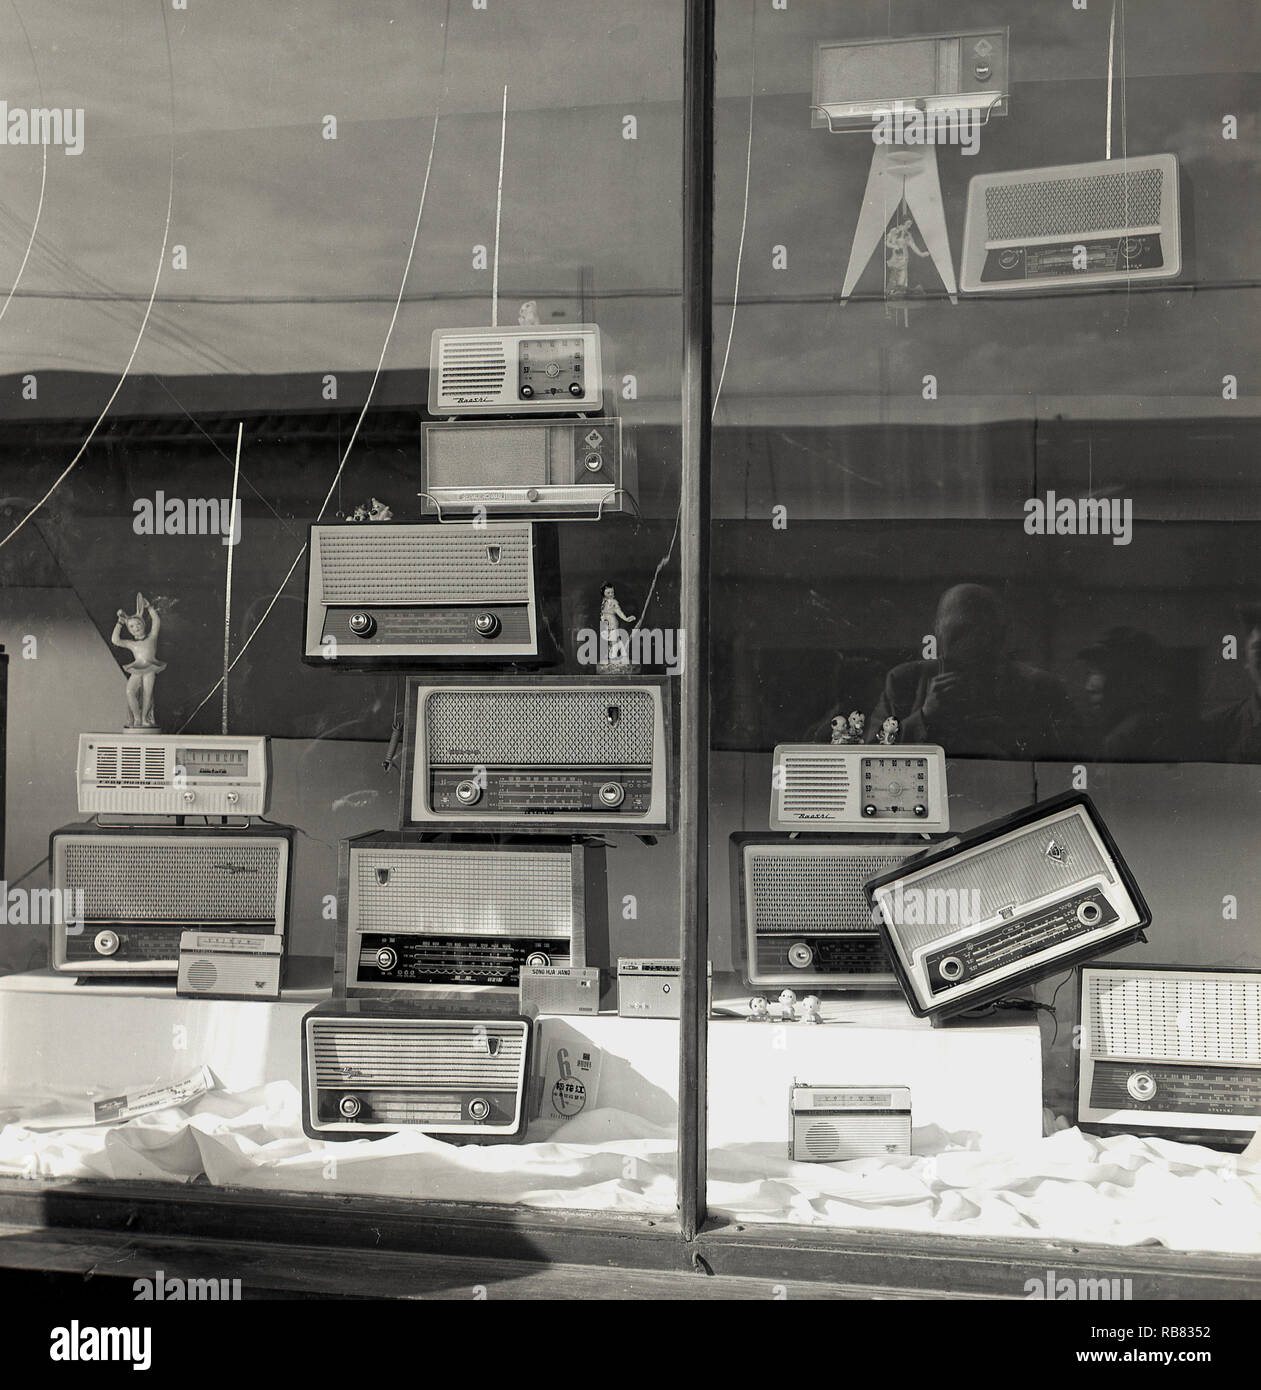 1950s, historical, Beijing, China. Electrical shop window, with a display of the latest transistor radios. In the early 1950s, the transistor radio was a revolutionary piece of technology that gave people, particularly the young, musical freedom for the first time and japanese manufacturers were at the forefront of using the technology - initially licensed from the USA - to product consumer products at competitive prices. - Stock Image